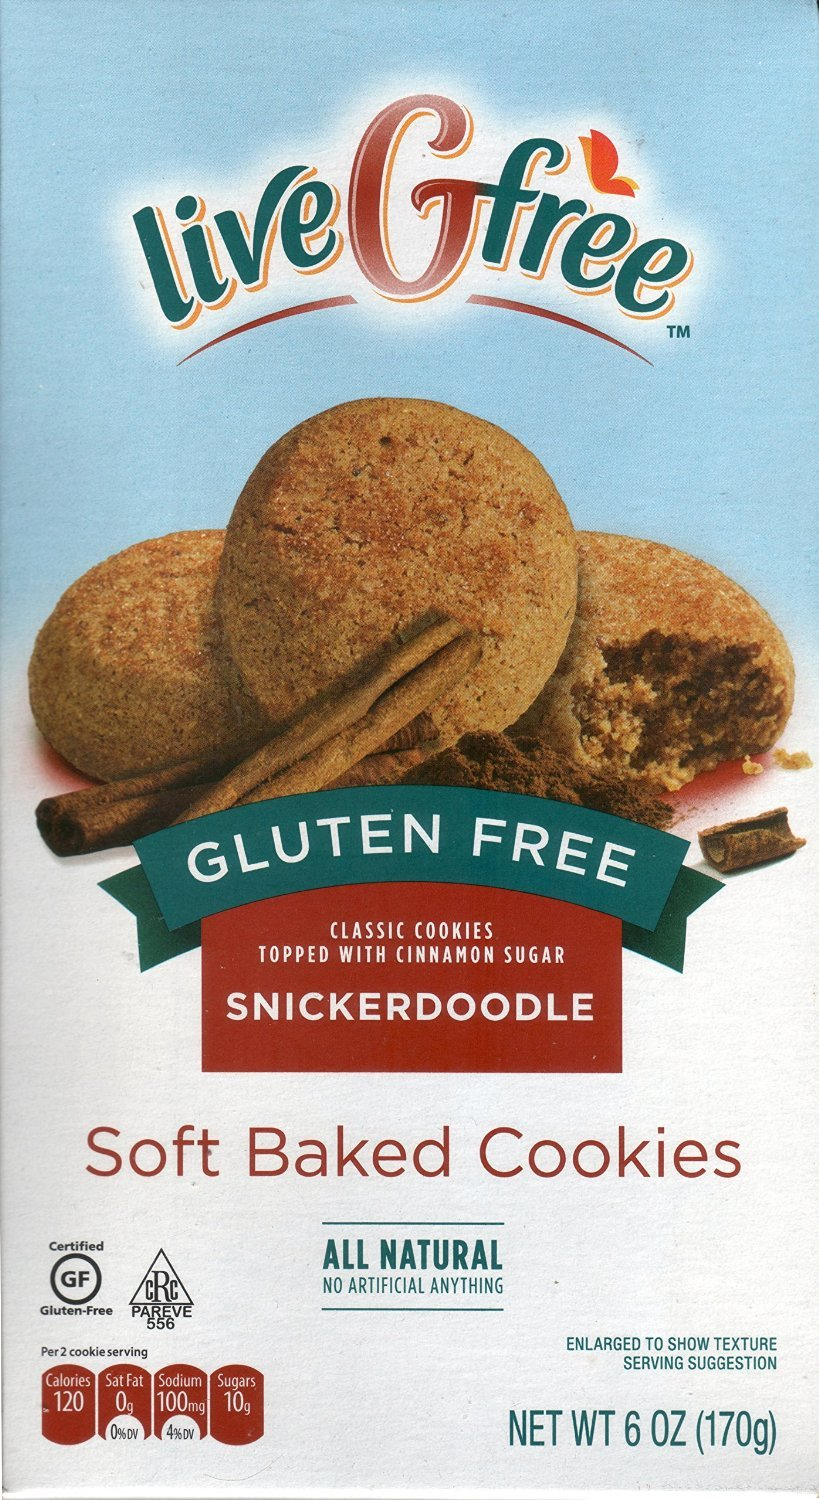 Live G Free Gluten Free Snickerdoodle Soft Baked Cookies (Pack of 2) by Live G Free